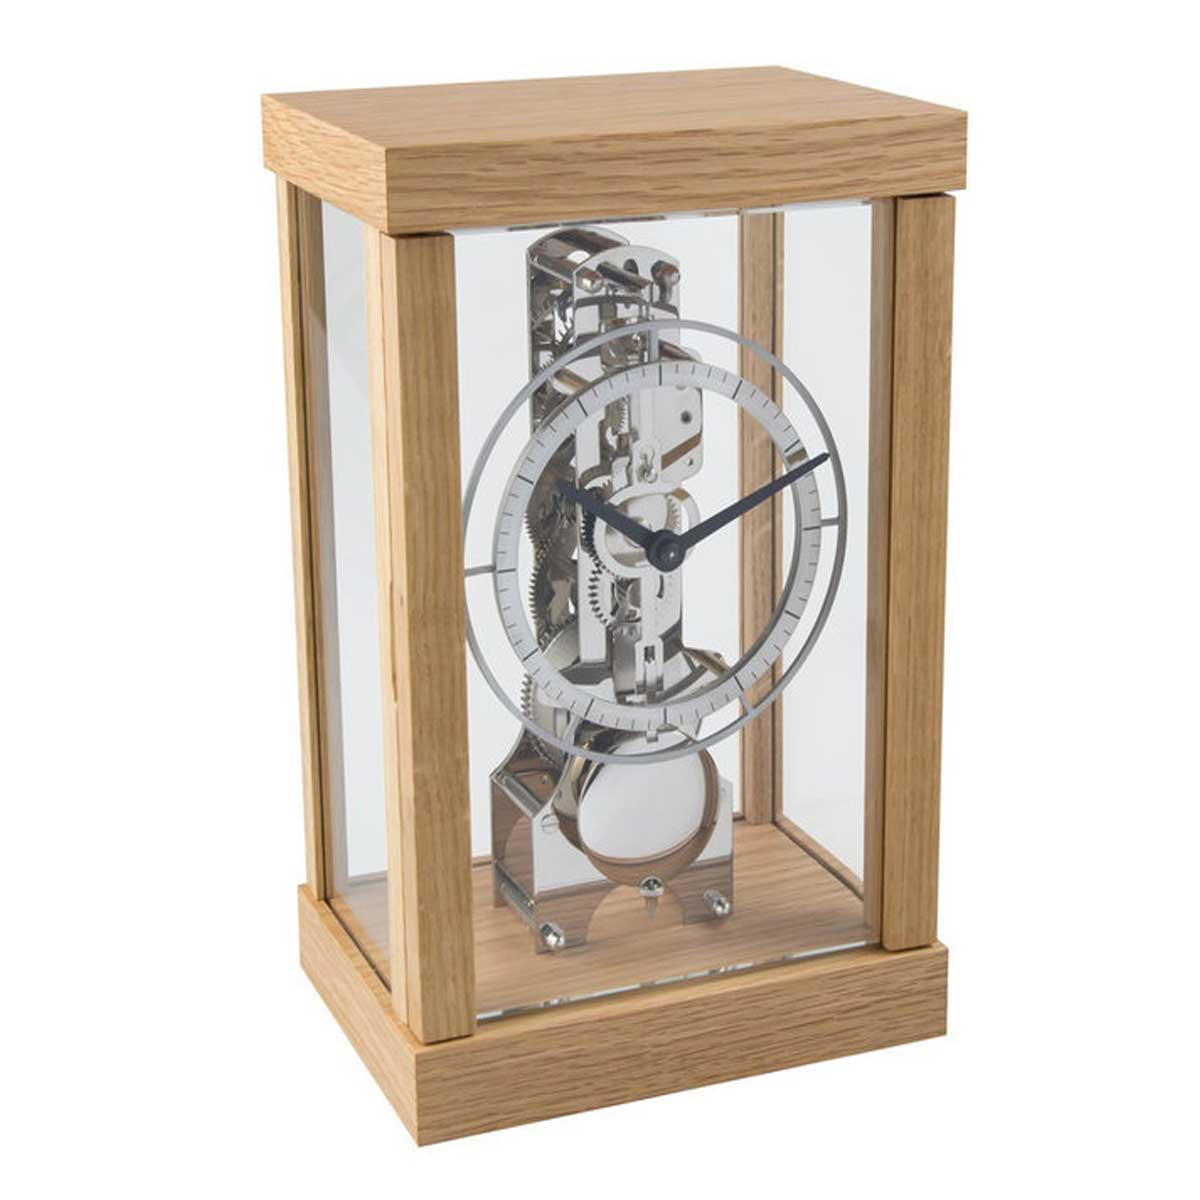 BATLEY 23048-050791 Mantel Clock Oak